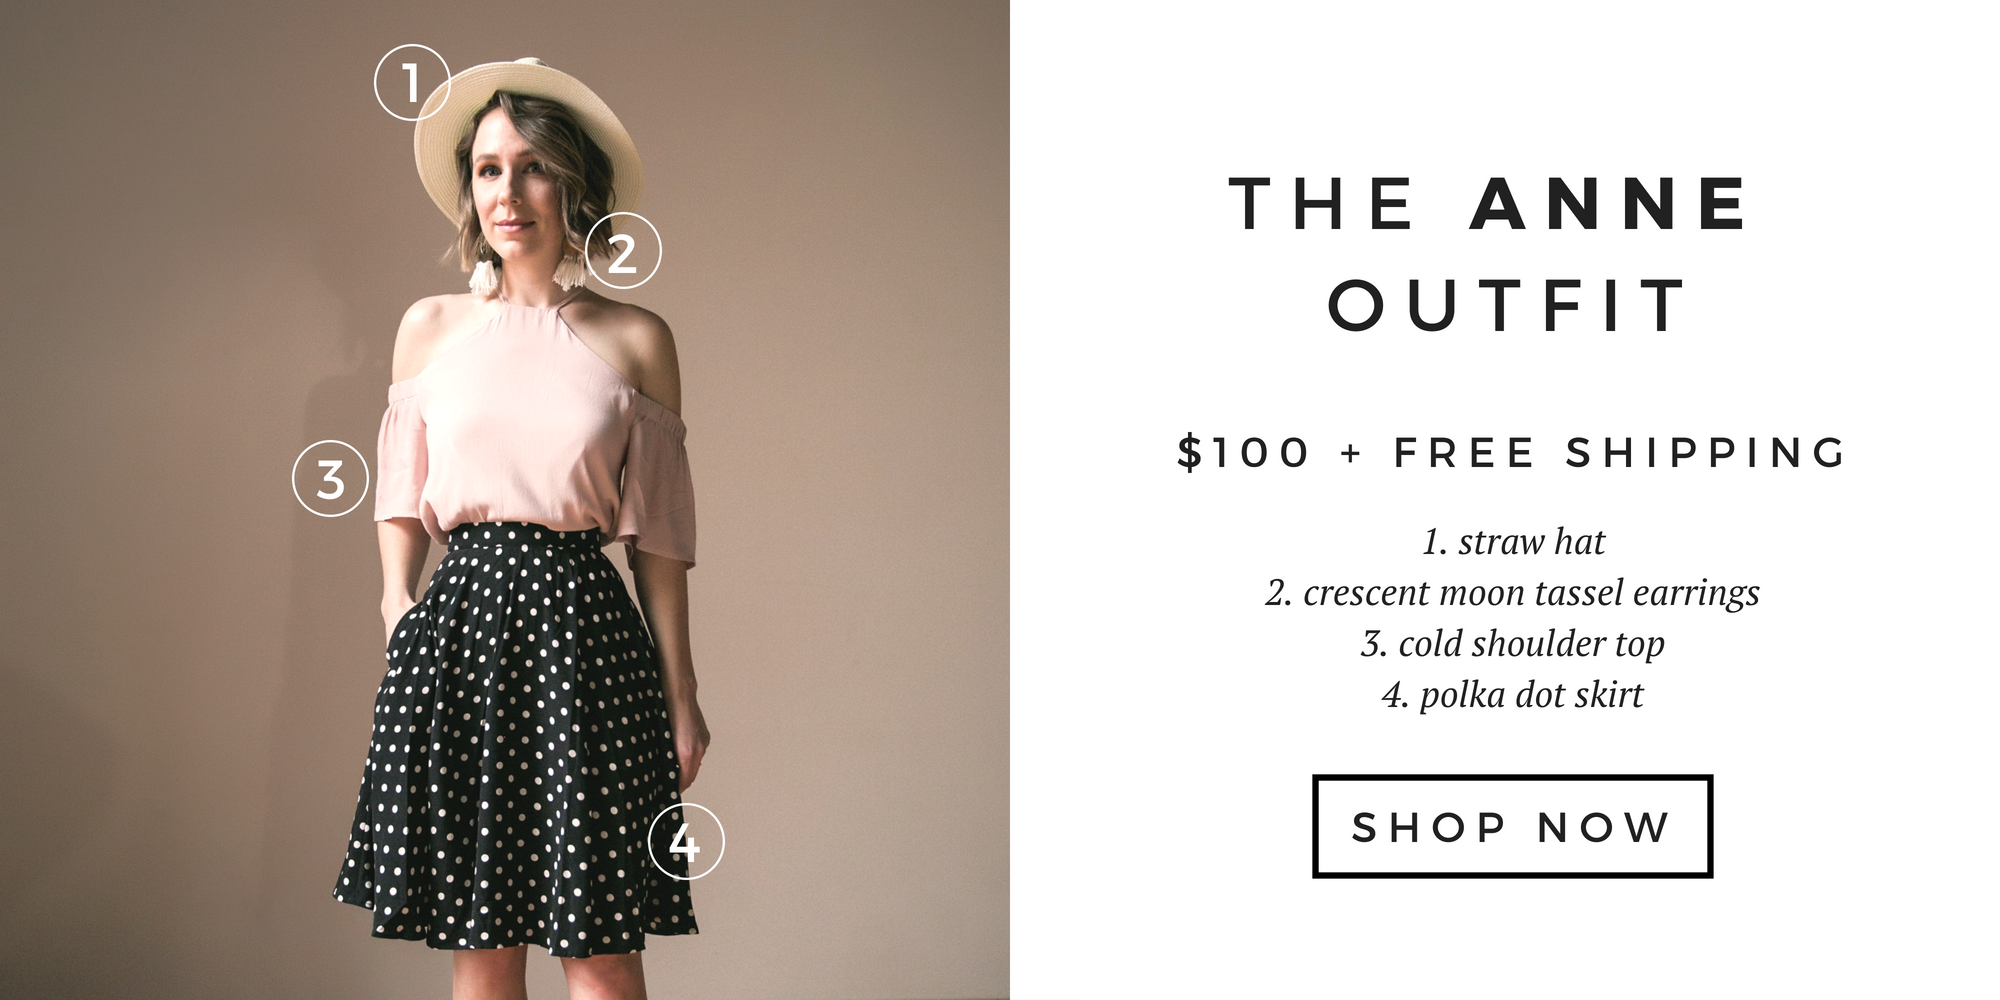 The Anne Outfit